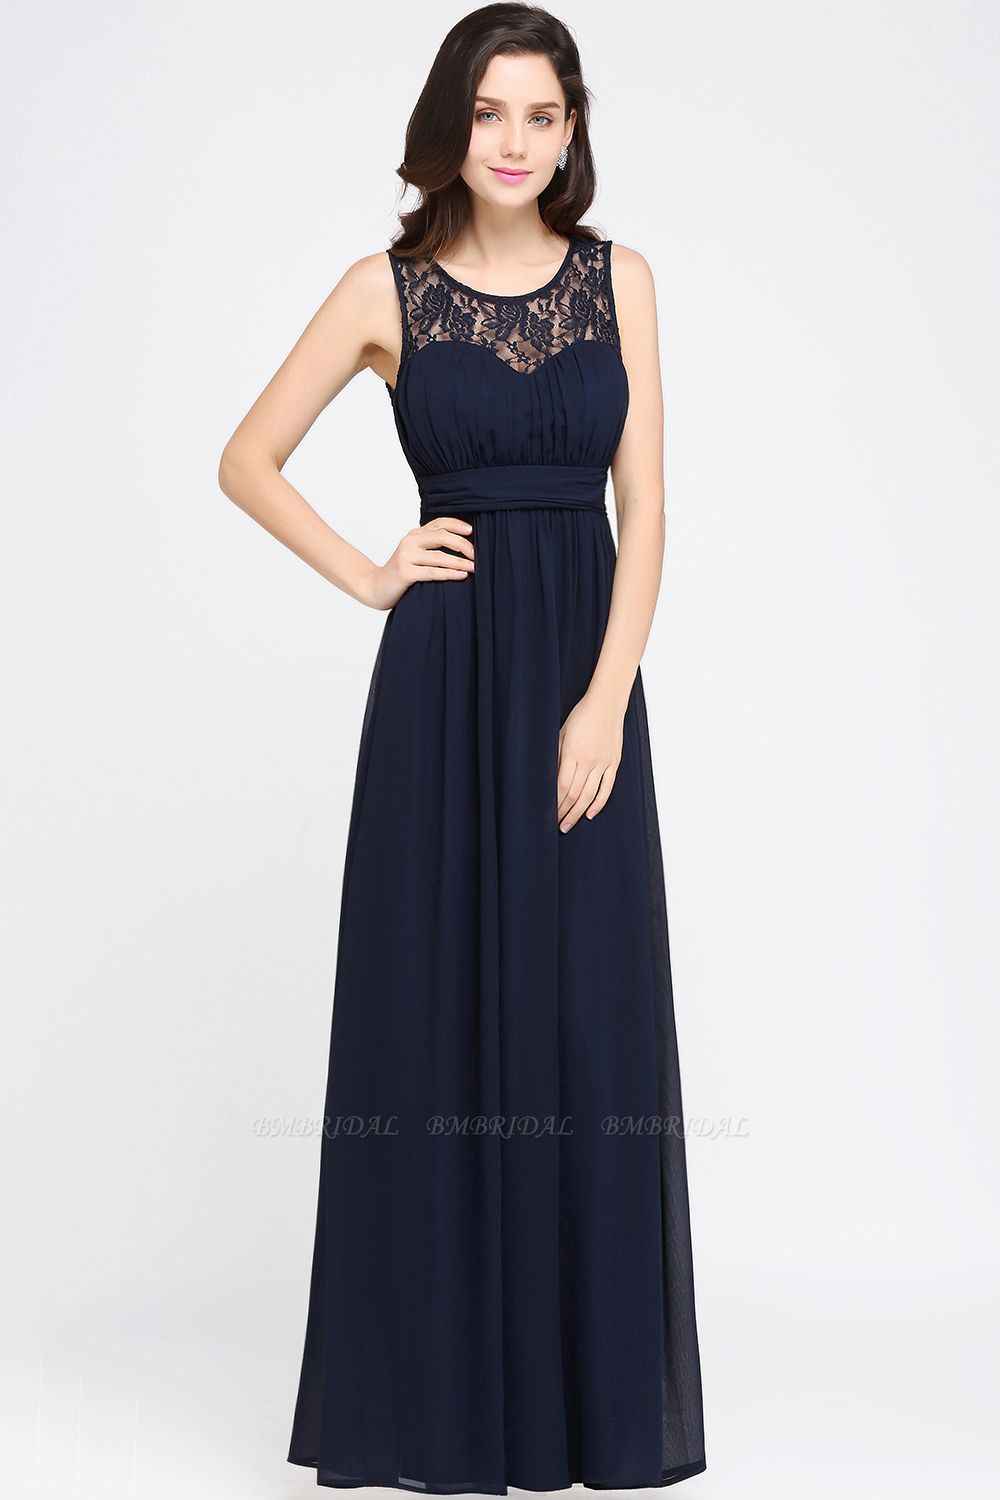 BMbridal Affordable Chiffon Jewel Sleeveless Lace Bridesmaid Dress Online with Ruffle